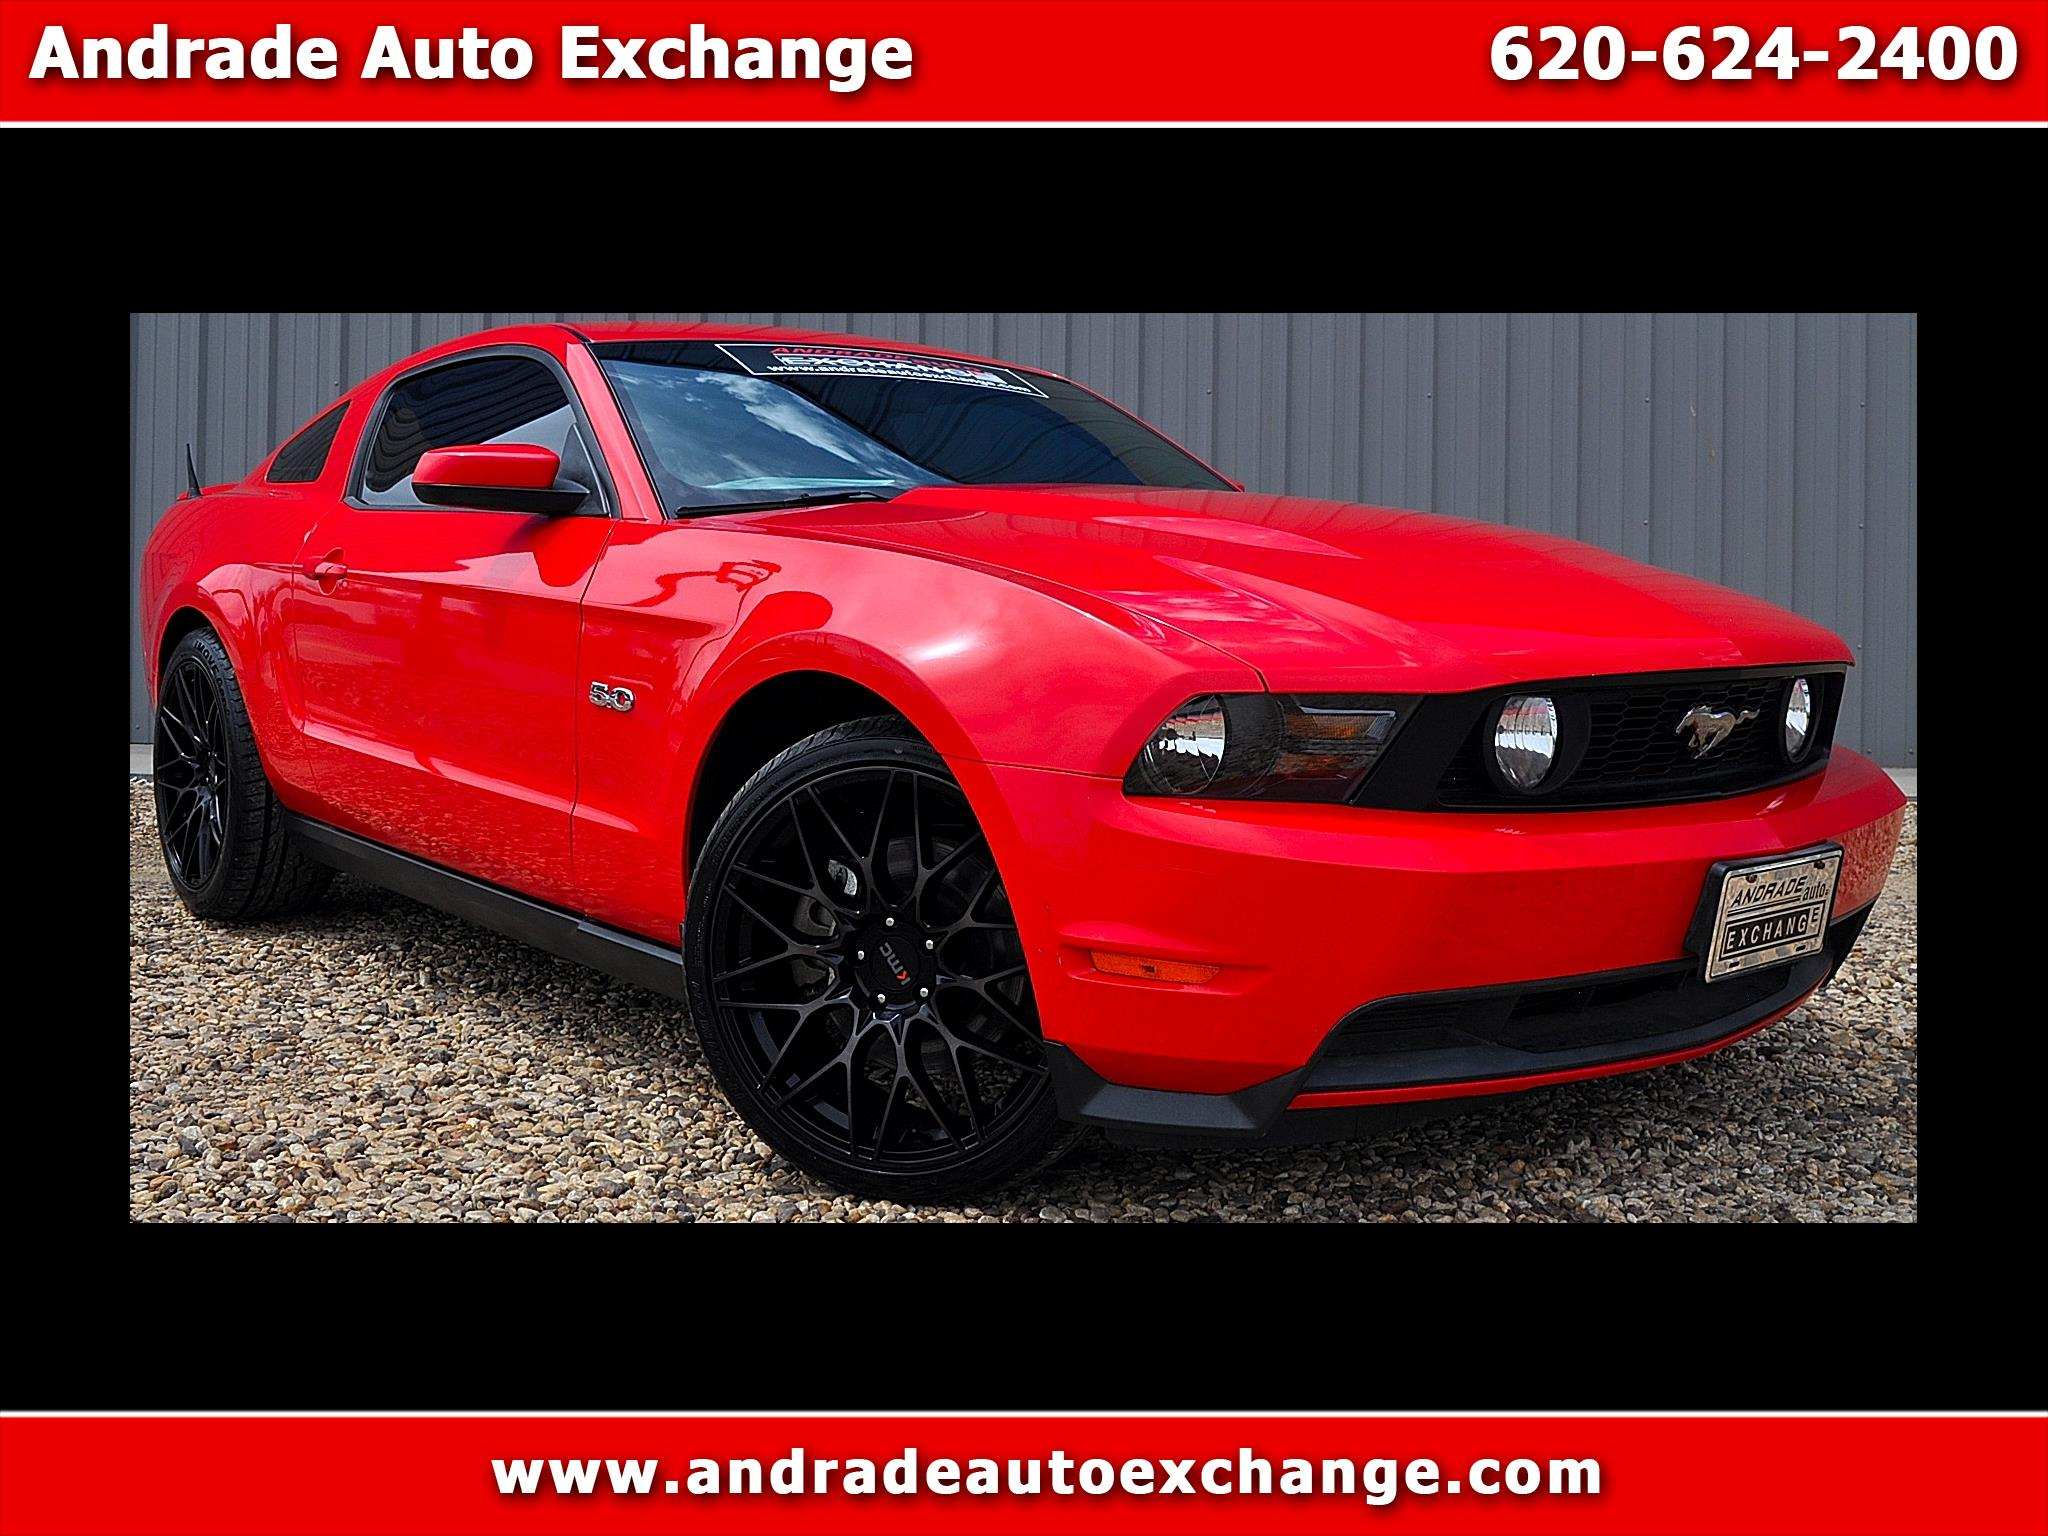 2011 Ford Mustang GT Coupe